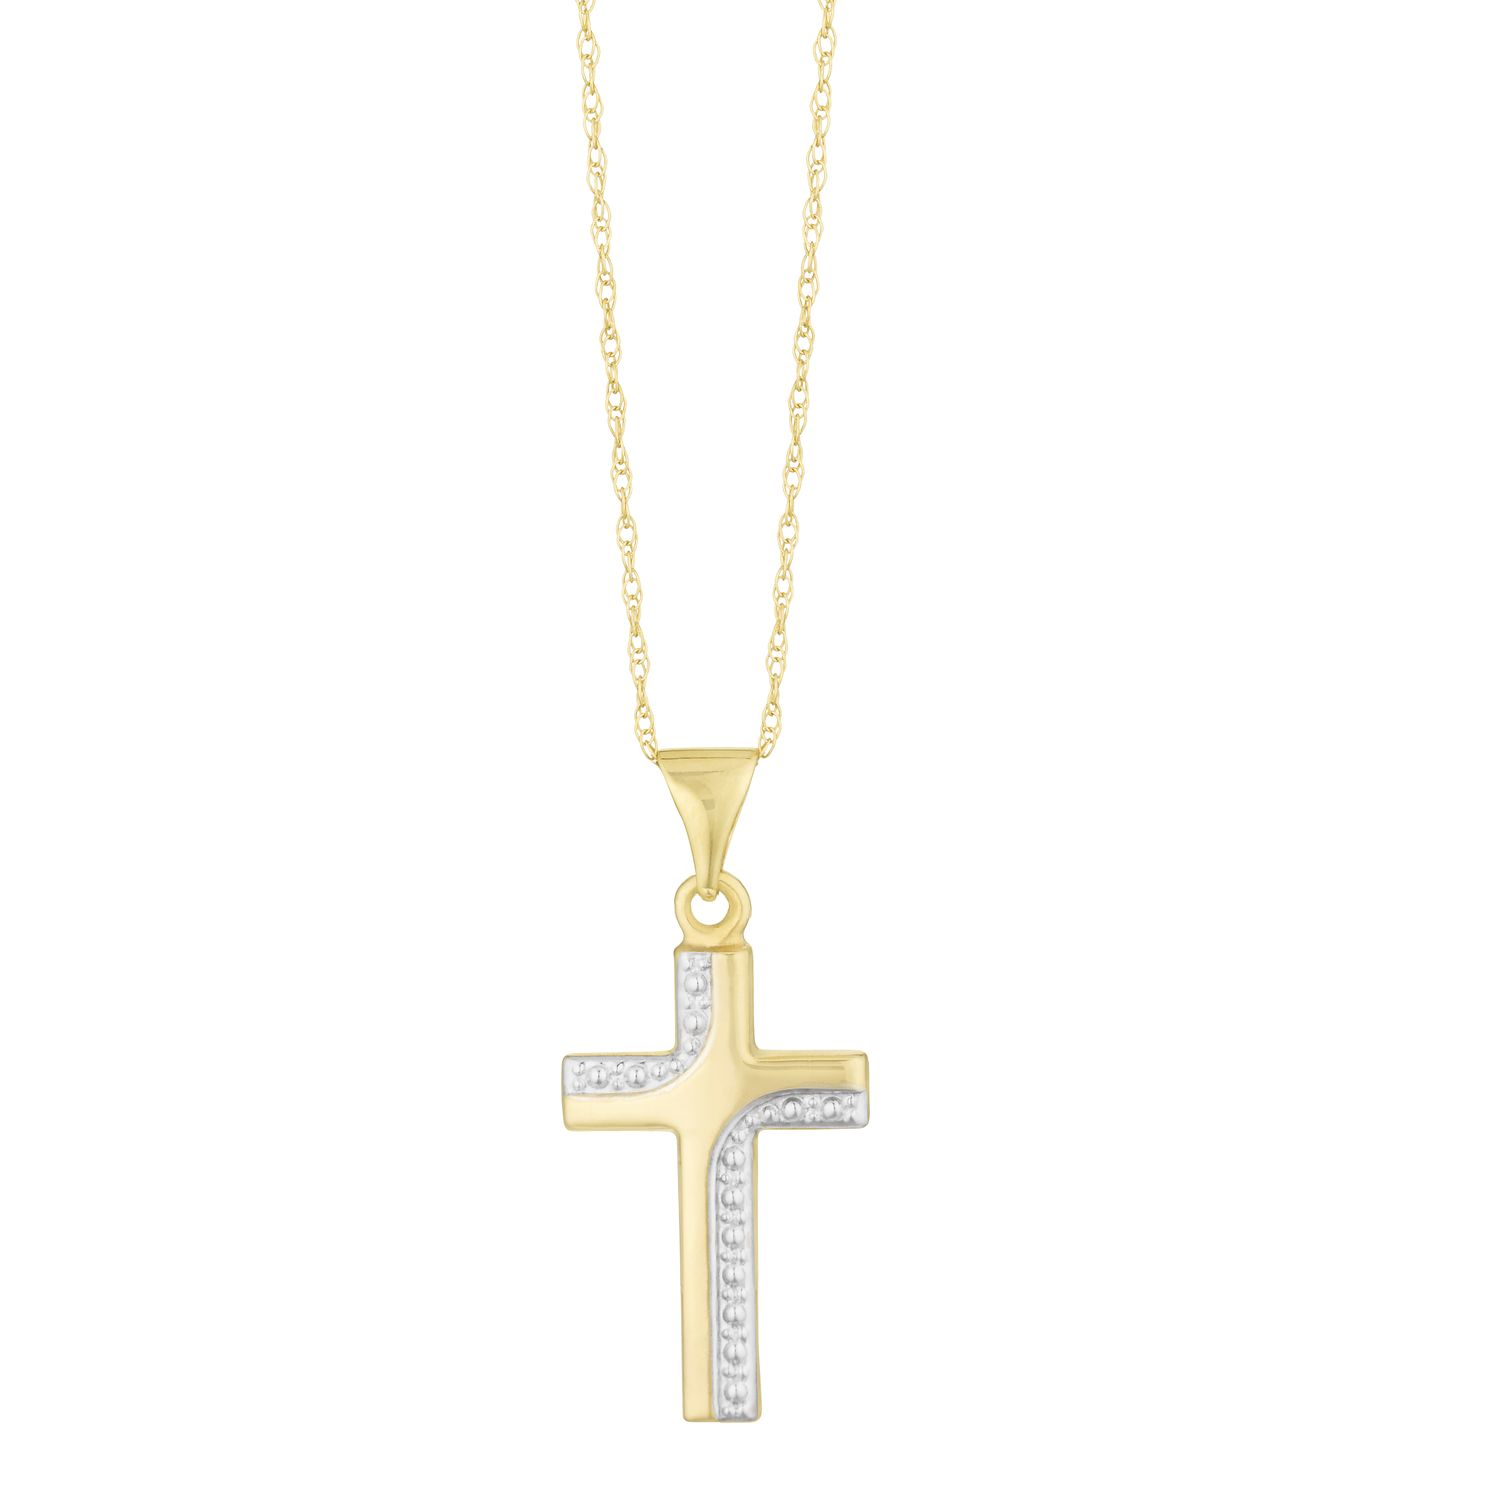 9ct Two Tone Gold Grain Cross Pendant - Product number 3128644